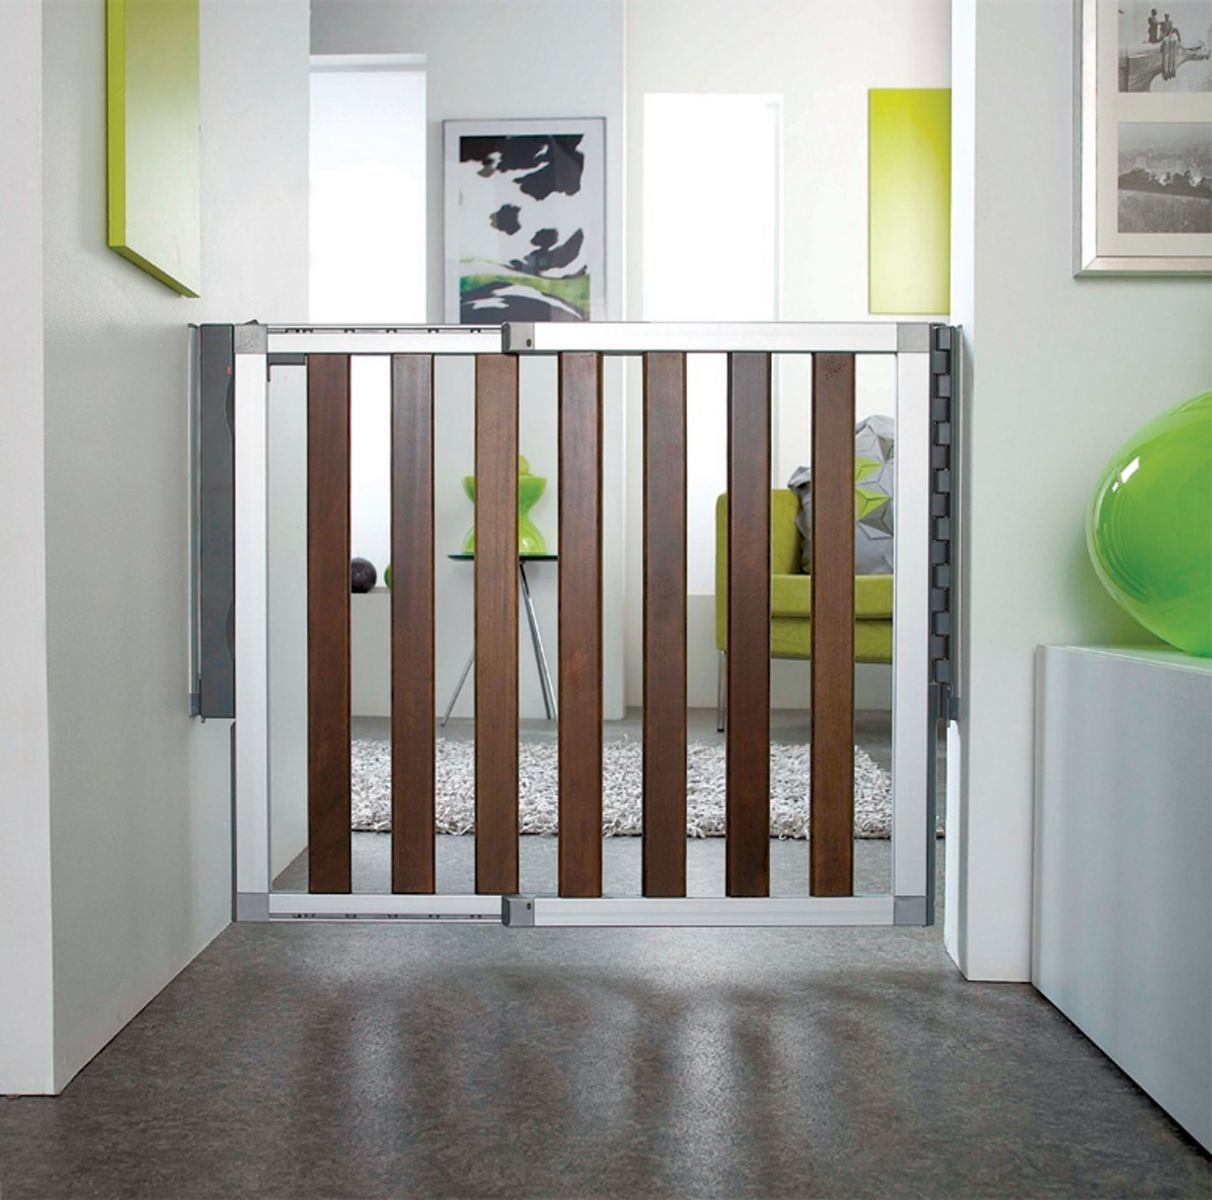 stylish child proofing  loft baby gate from munchkin childsafety  - chic babyproofing sounds like an oxymoron but now there's a baby gate withsleek styling to appeal to your modern aesthetic meet the loft® aluminumgate